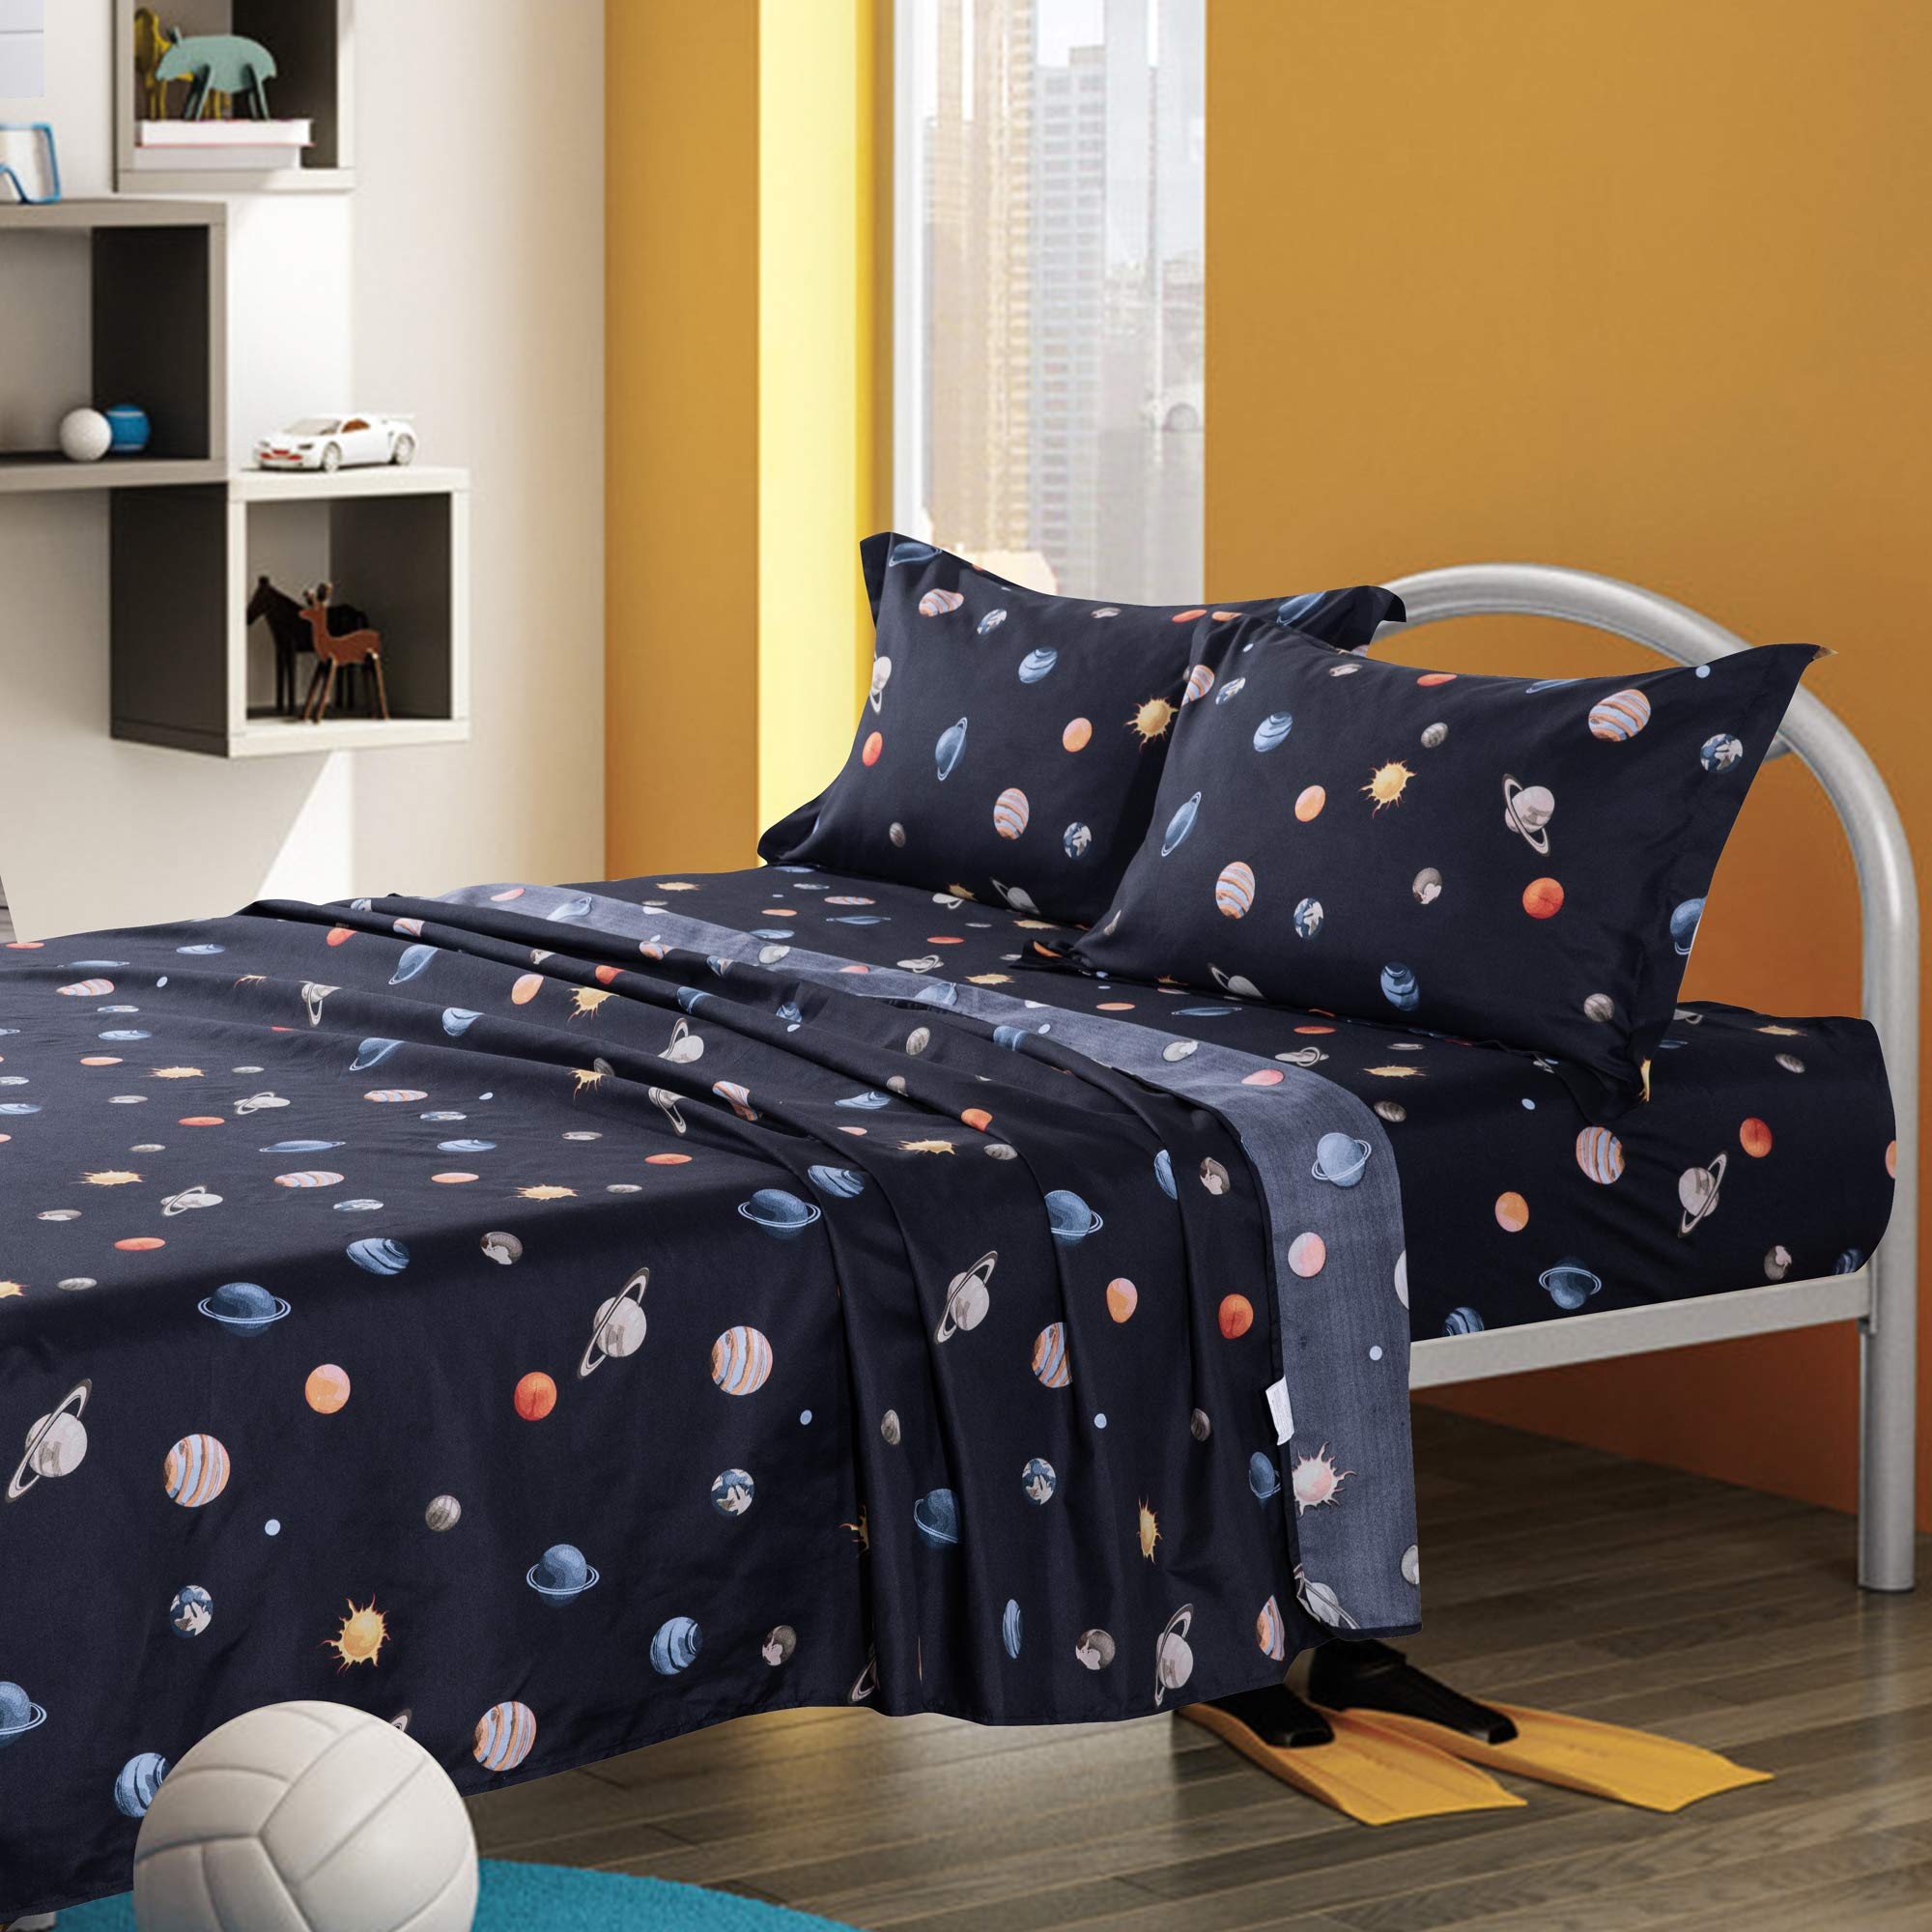 KFZ Queen Sheets Set -Navy Blue, Solar System Planets Printed 4 Pieces Bedding with 1 Fitted Sheet, 1 Flat Sheet, 2 Pillowcases - Soft Egyptian Quality Brushed Microfiber Bed Set for Boys and Girls by KFZ